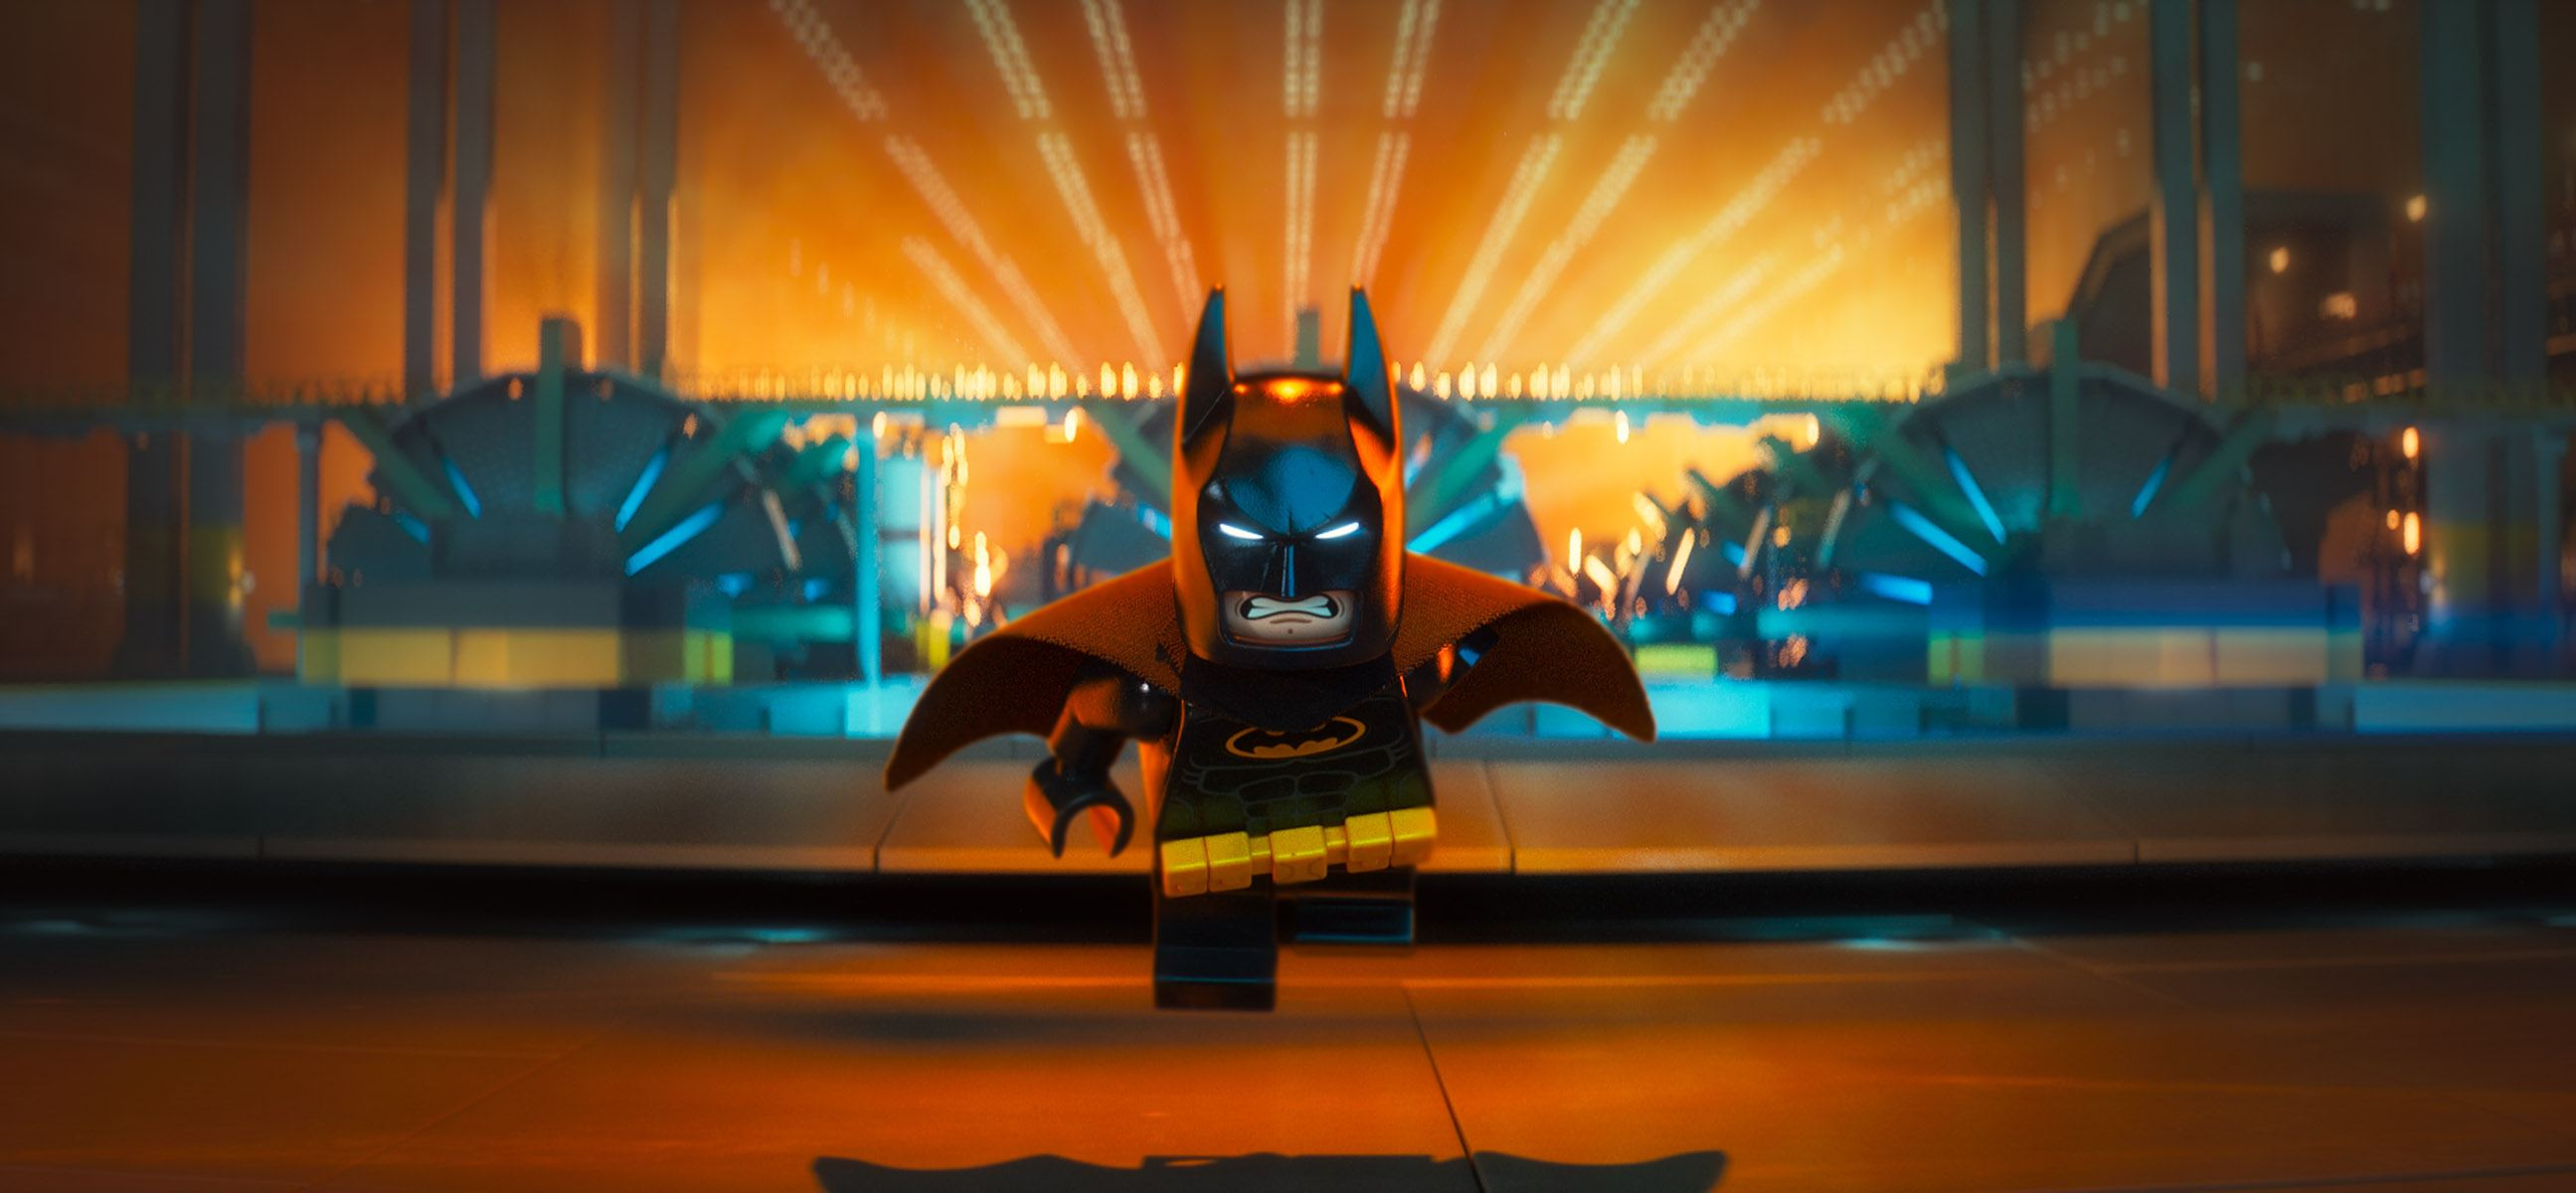 The Lego Batman Movie wallpaper 17